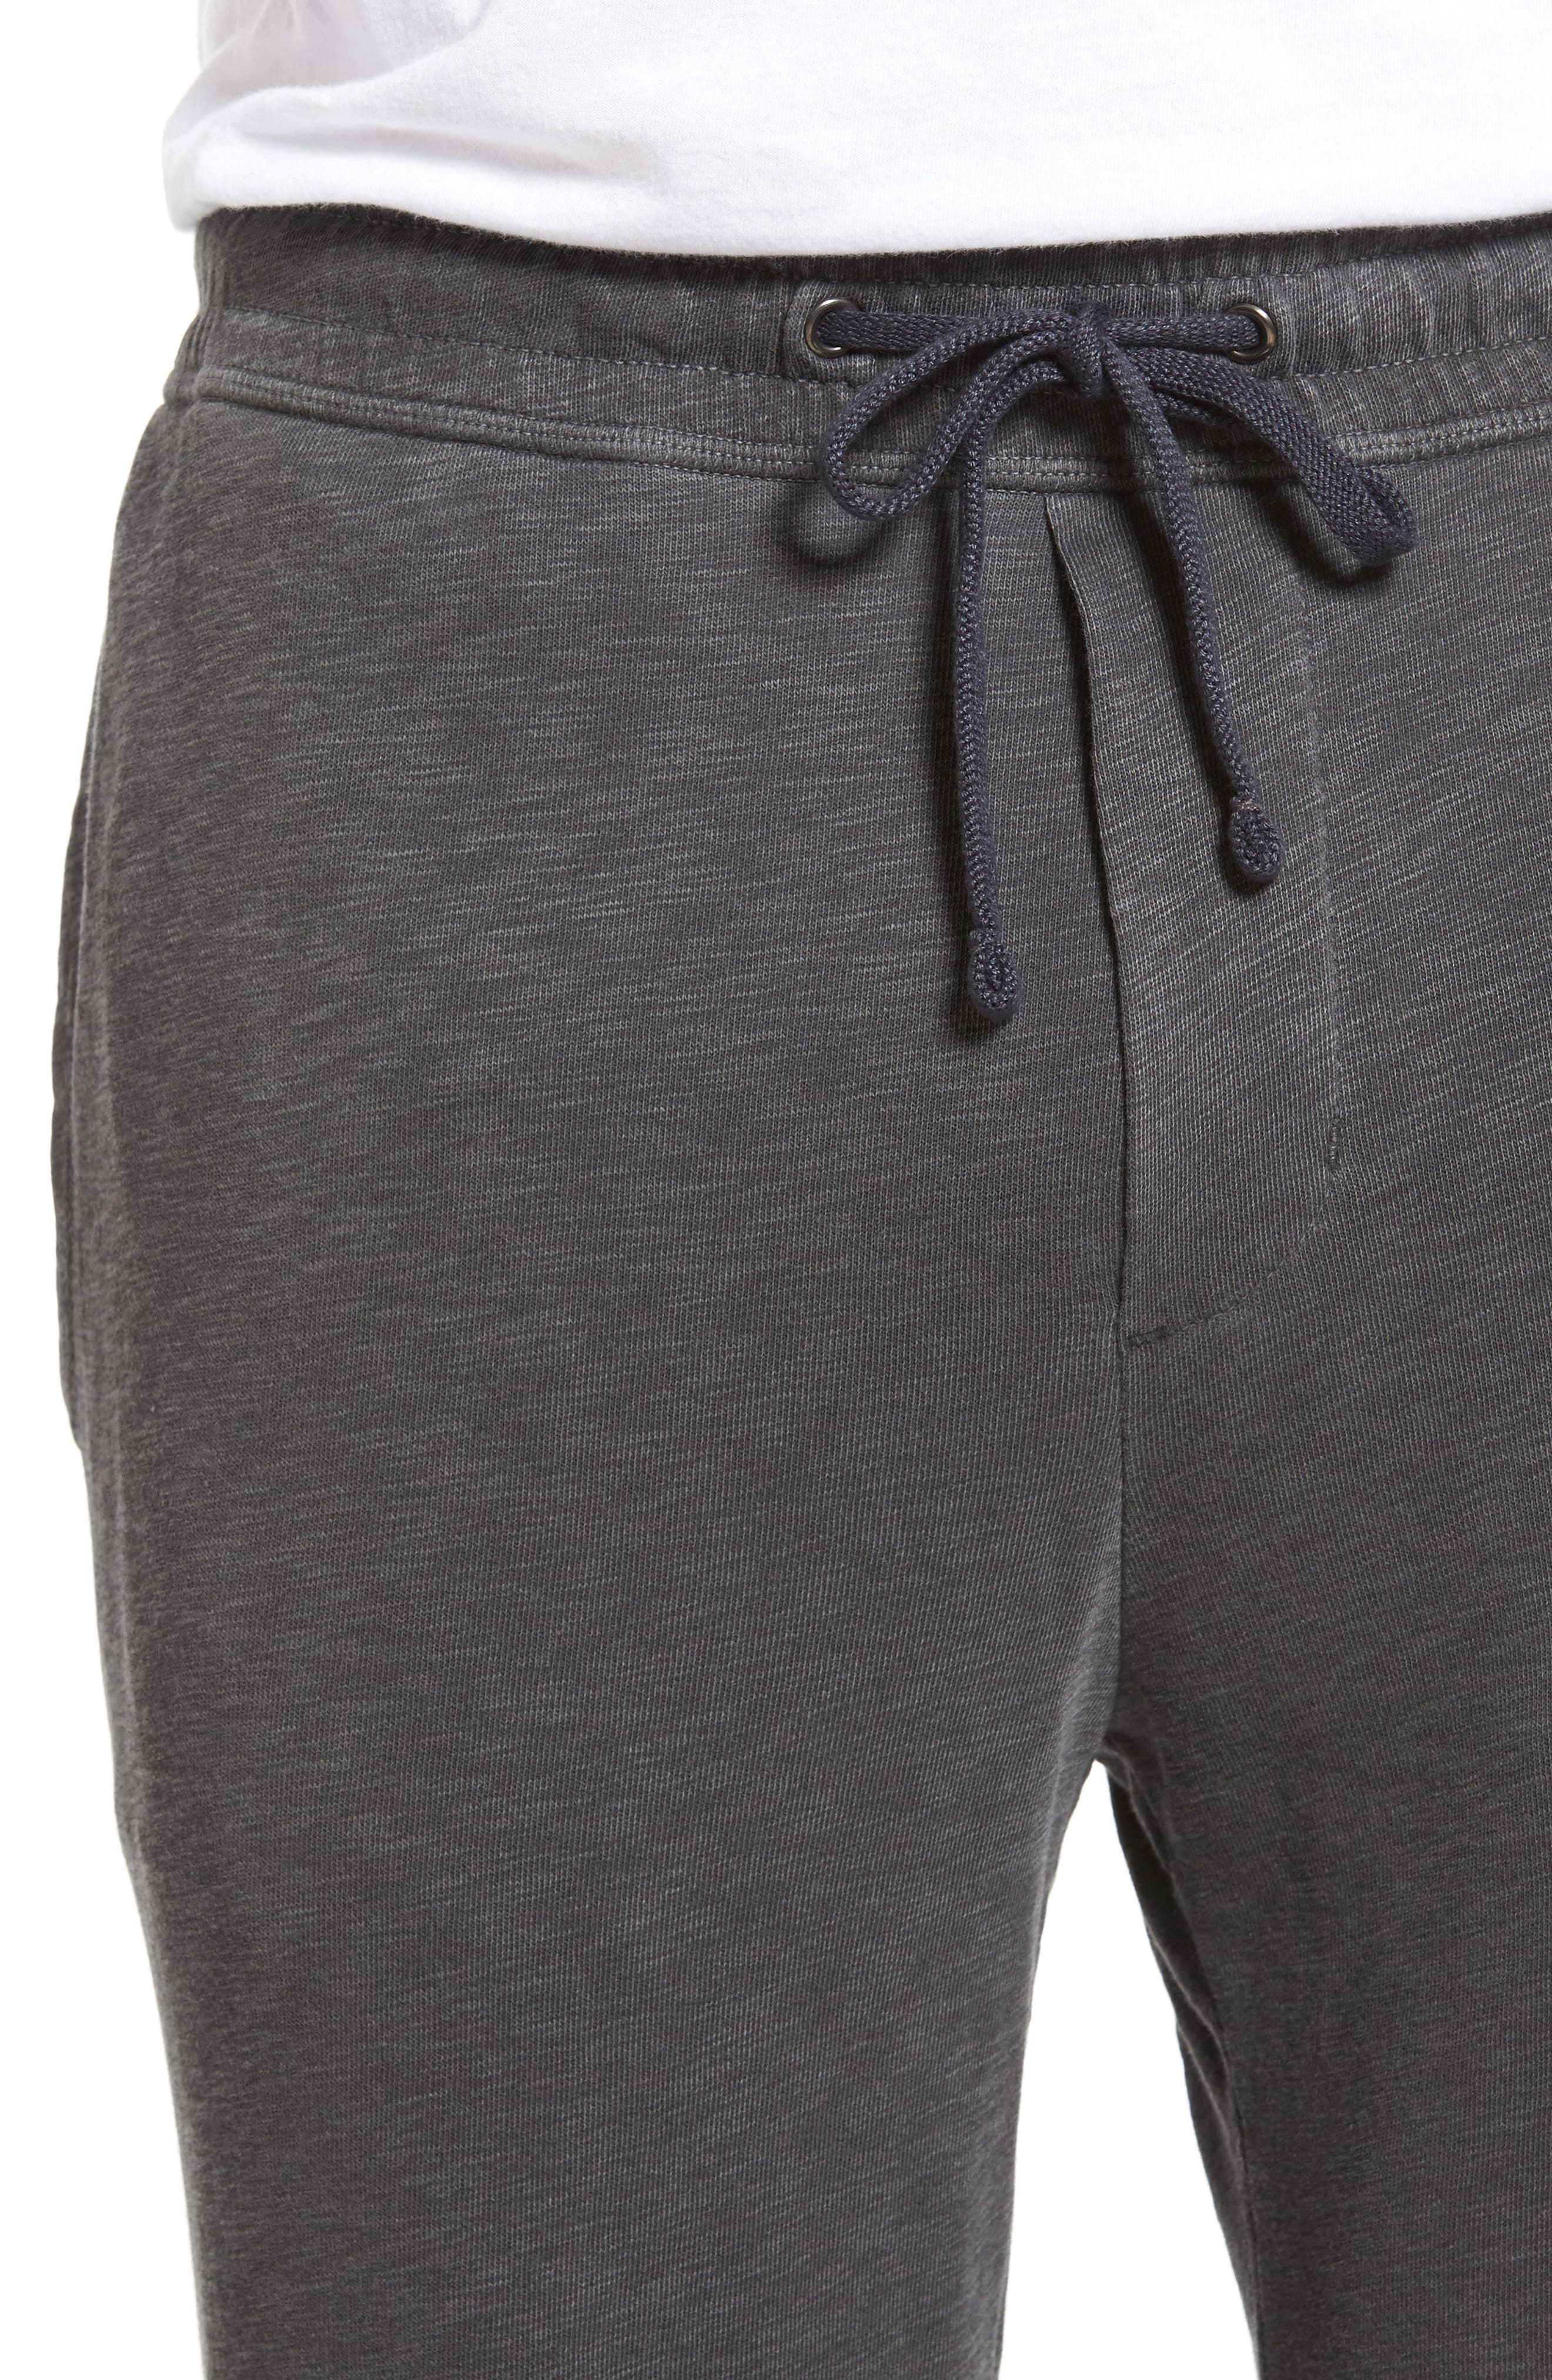 Alternate Image 4  - James Perse 'Classic' Sweatpants